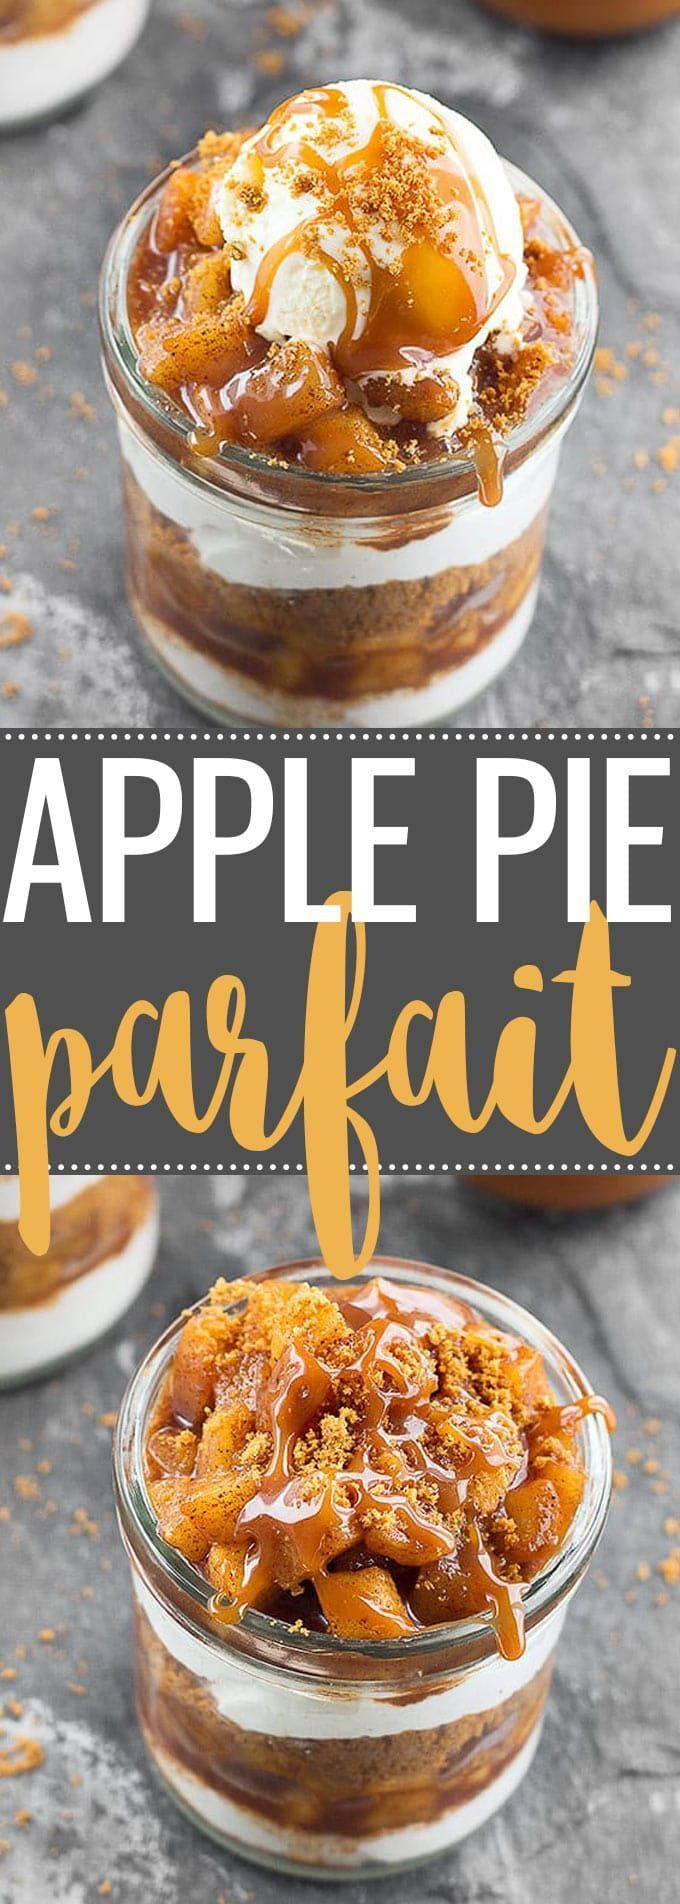 Apple Pie Yogurt Parfait -  the perfect easy dessert for fall gatherings! It's creamy, crunchy, perfectly sweet, subtly spiced and delicious via @easyasapplepie